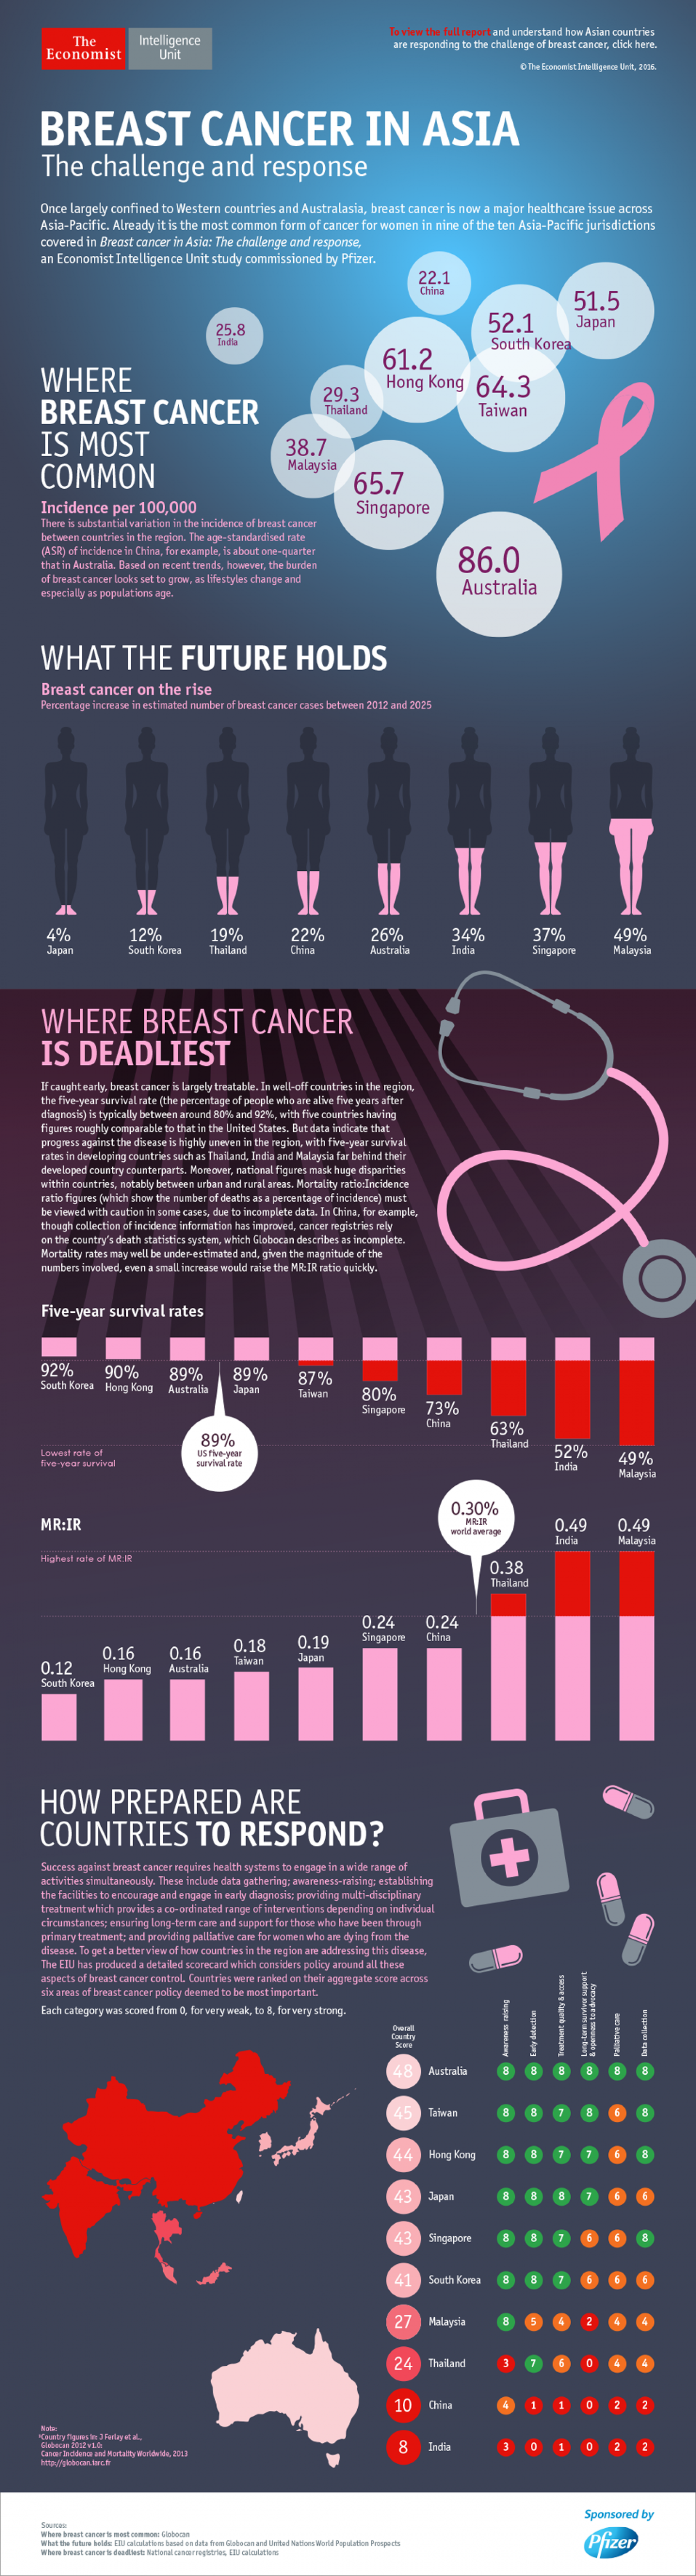 Breast cancer in Asia Infographic